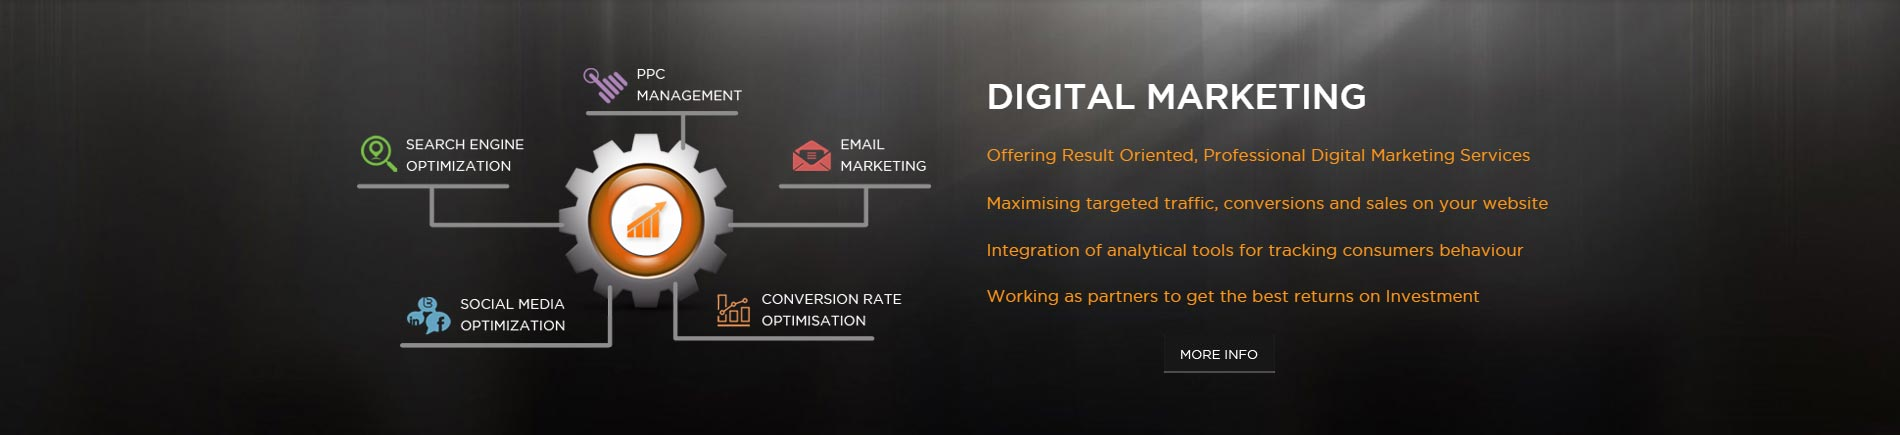 Renowned Digital Marketing Solutions - KOL Limited